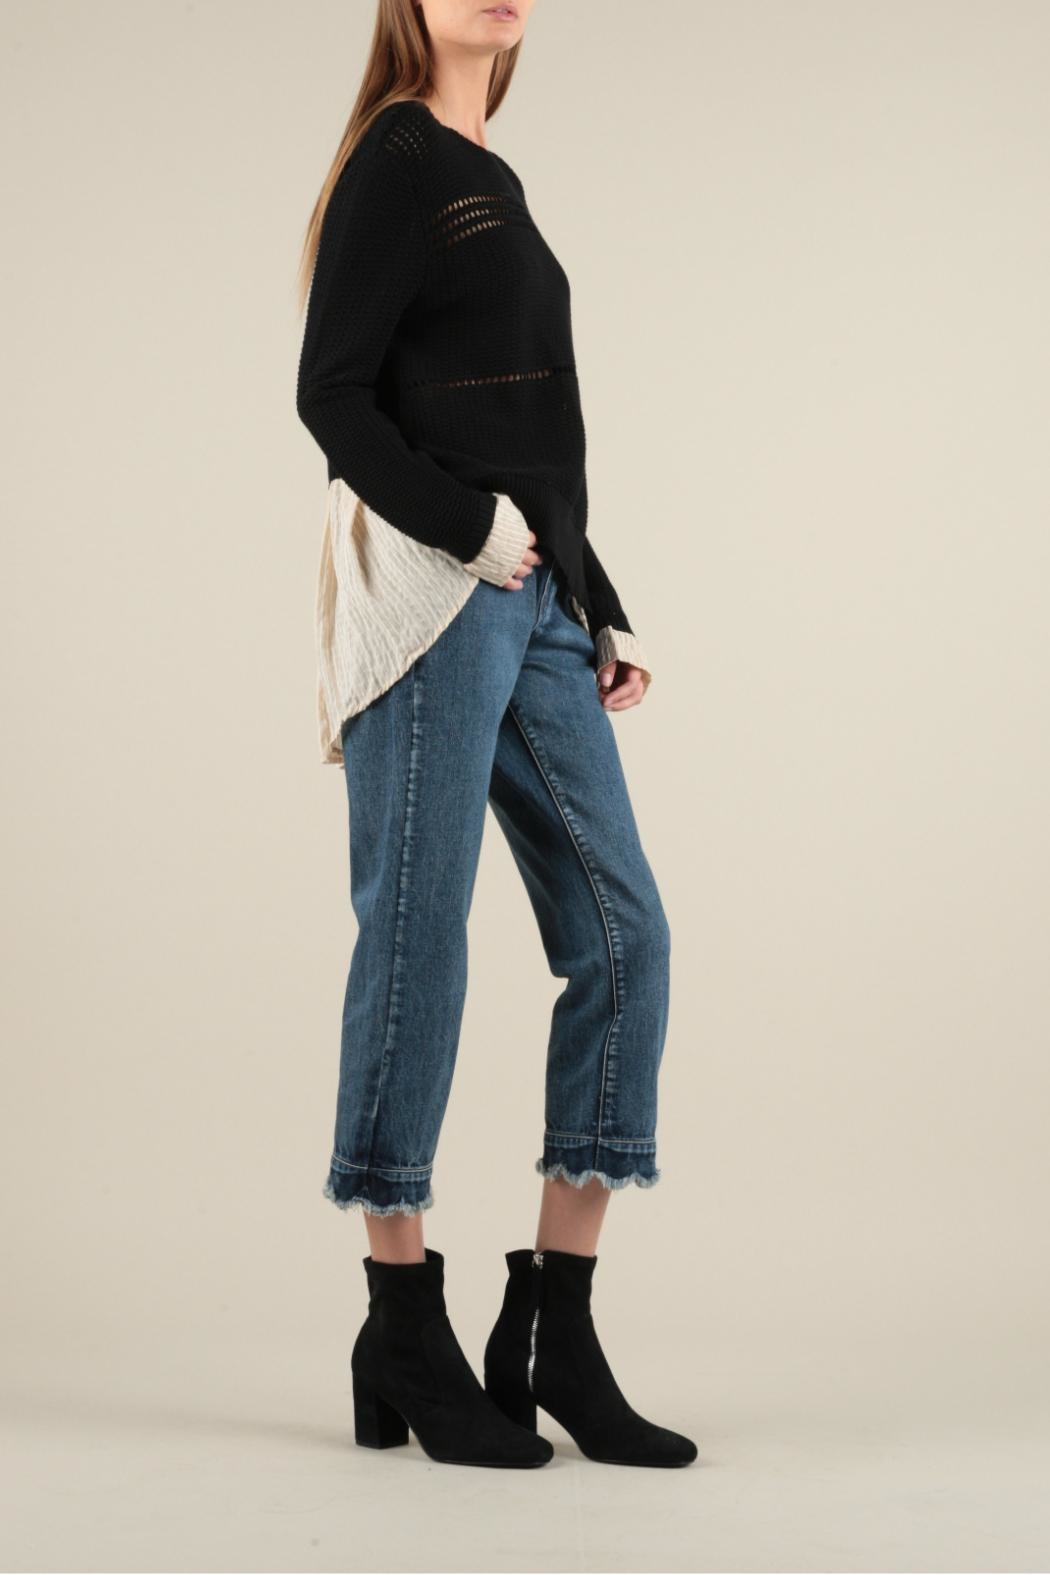 Current Air Shirt Layer Sweater - Side Cropped Image